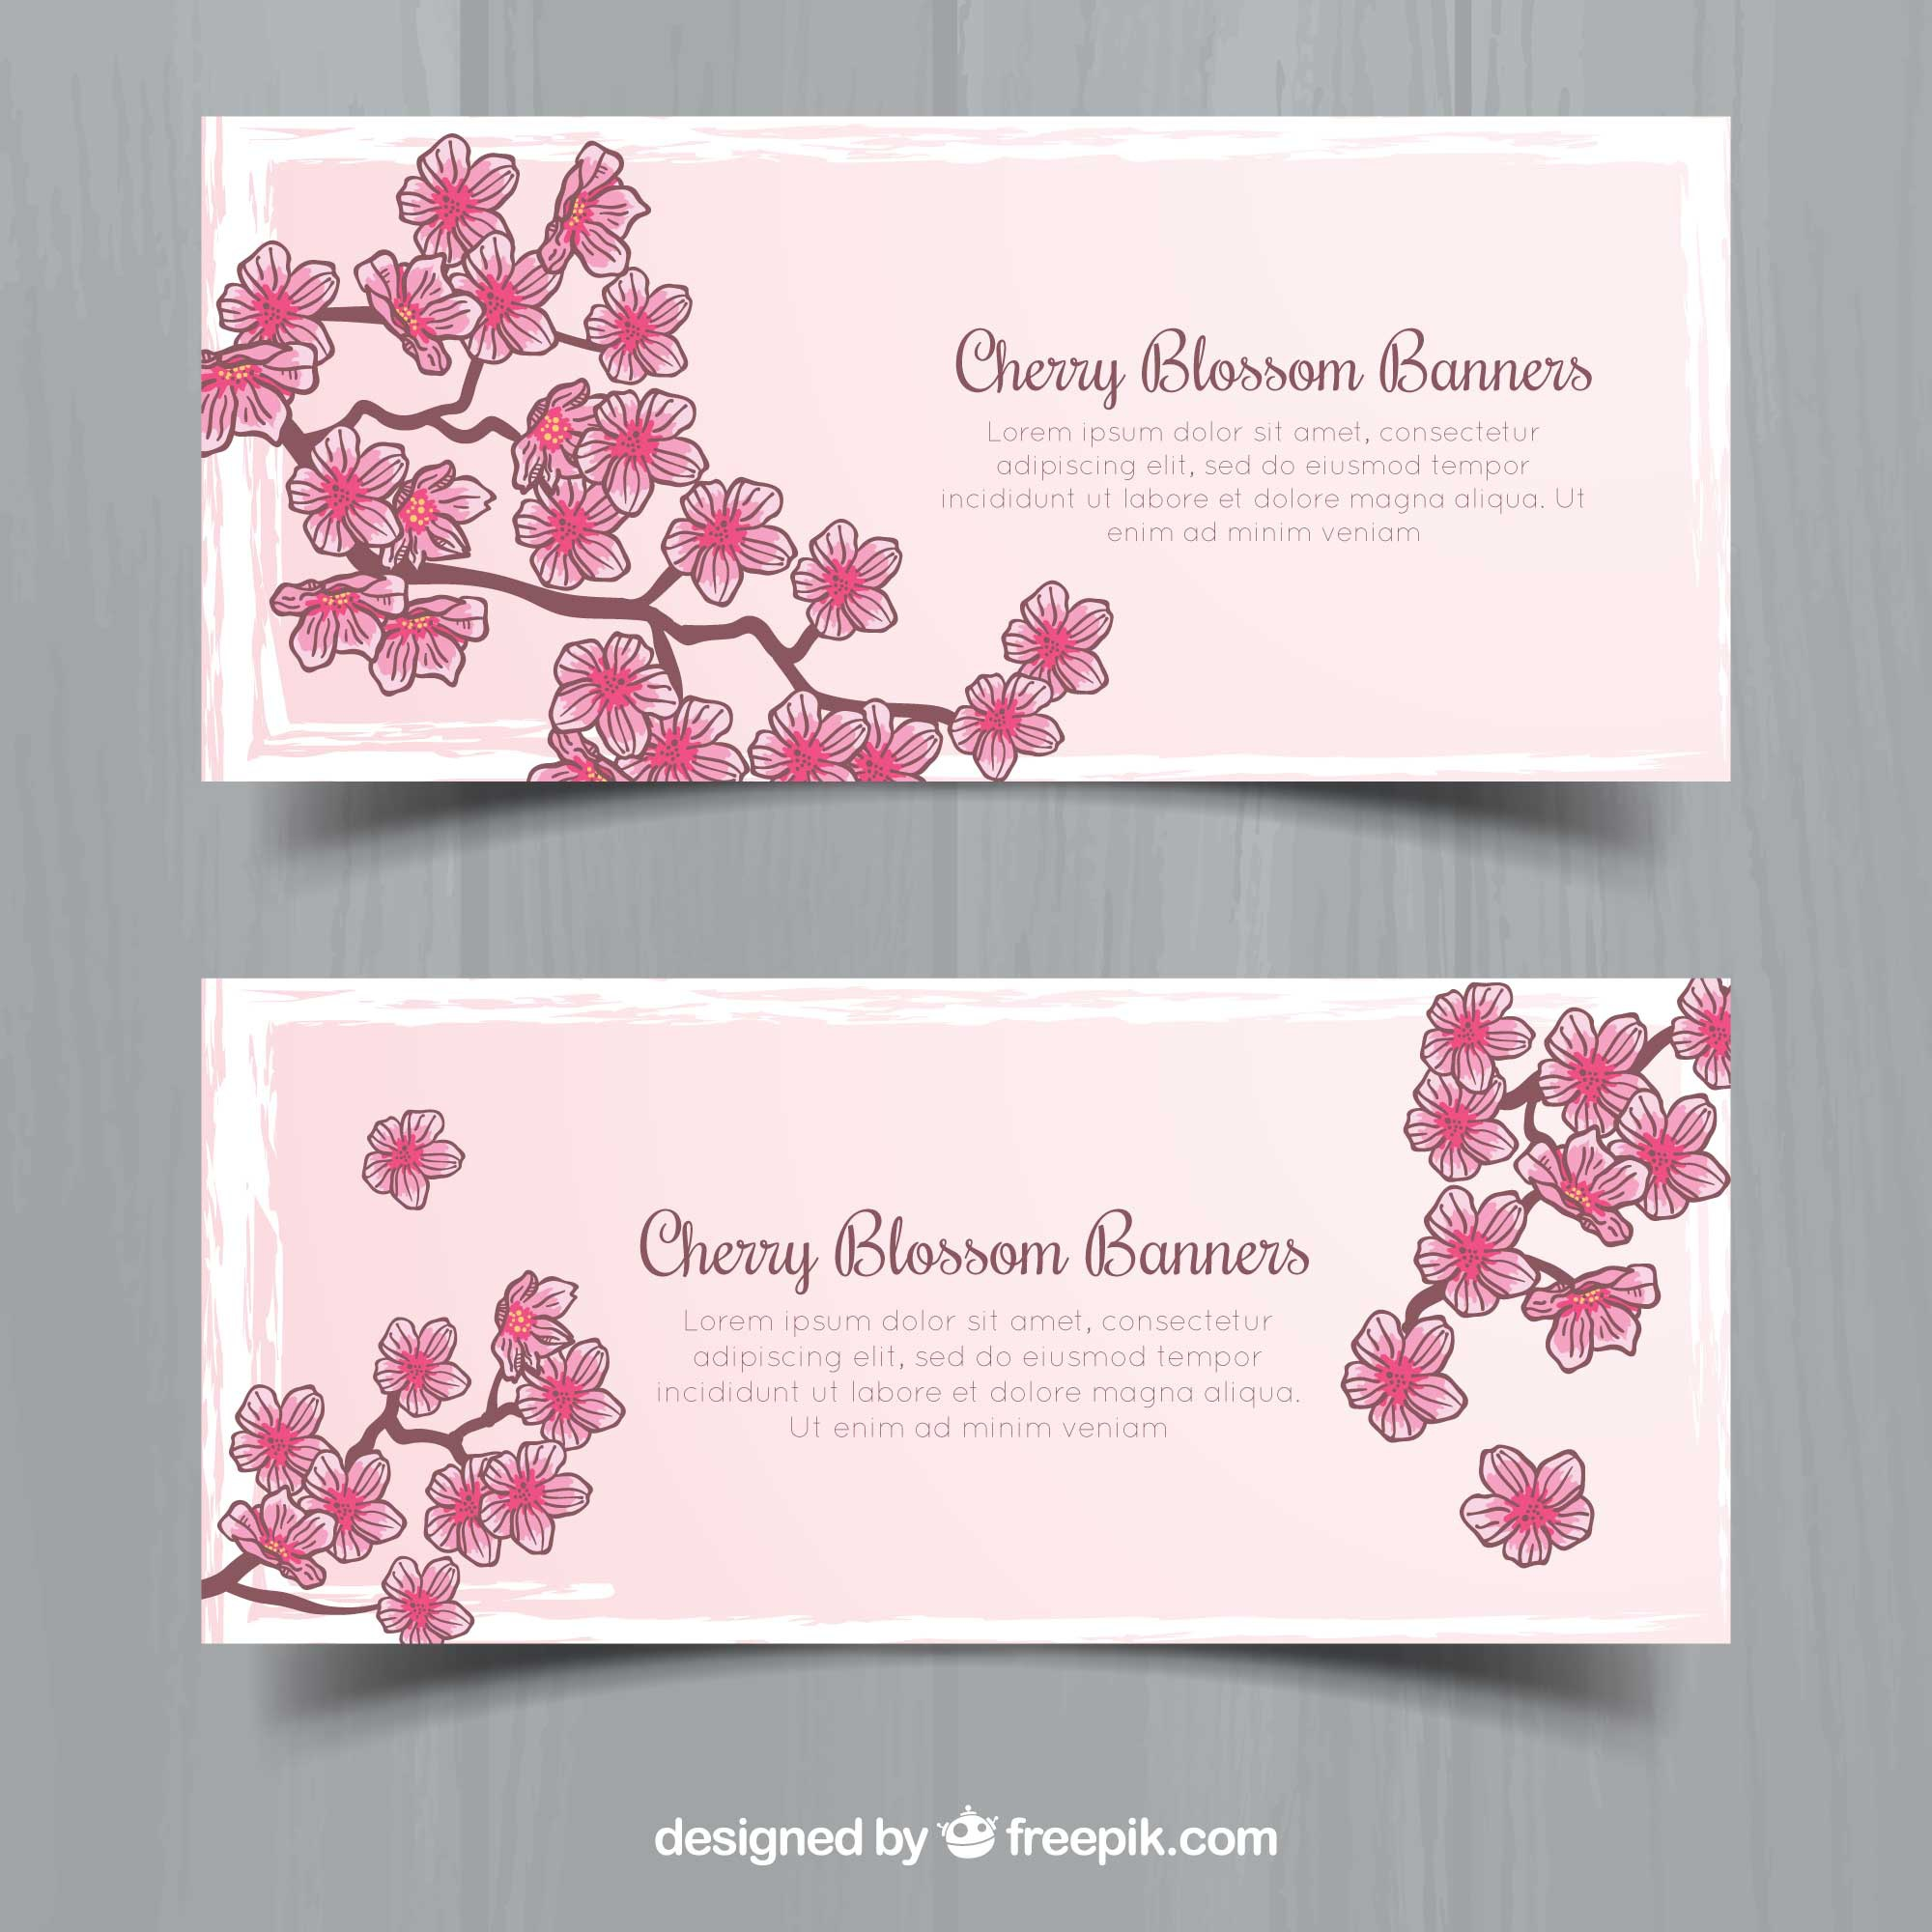 Hand-drawn banners with cherry blossoms